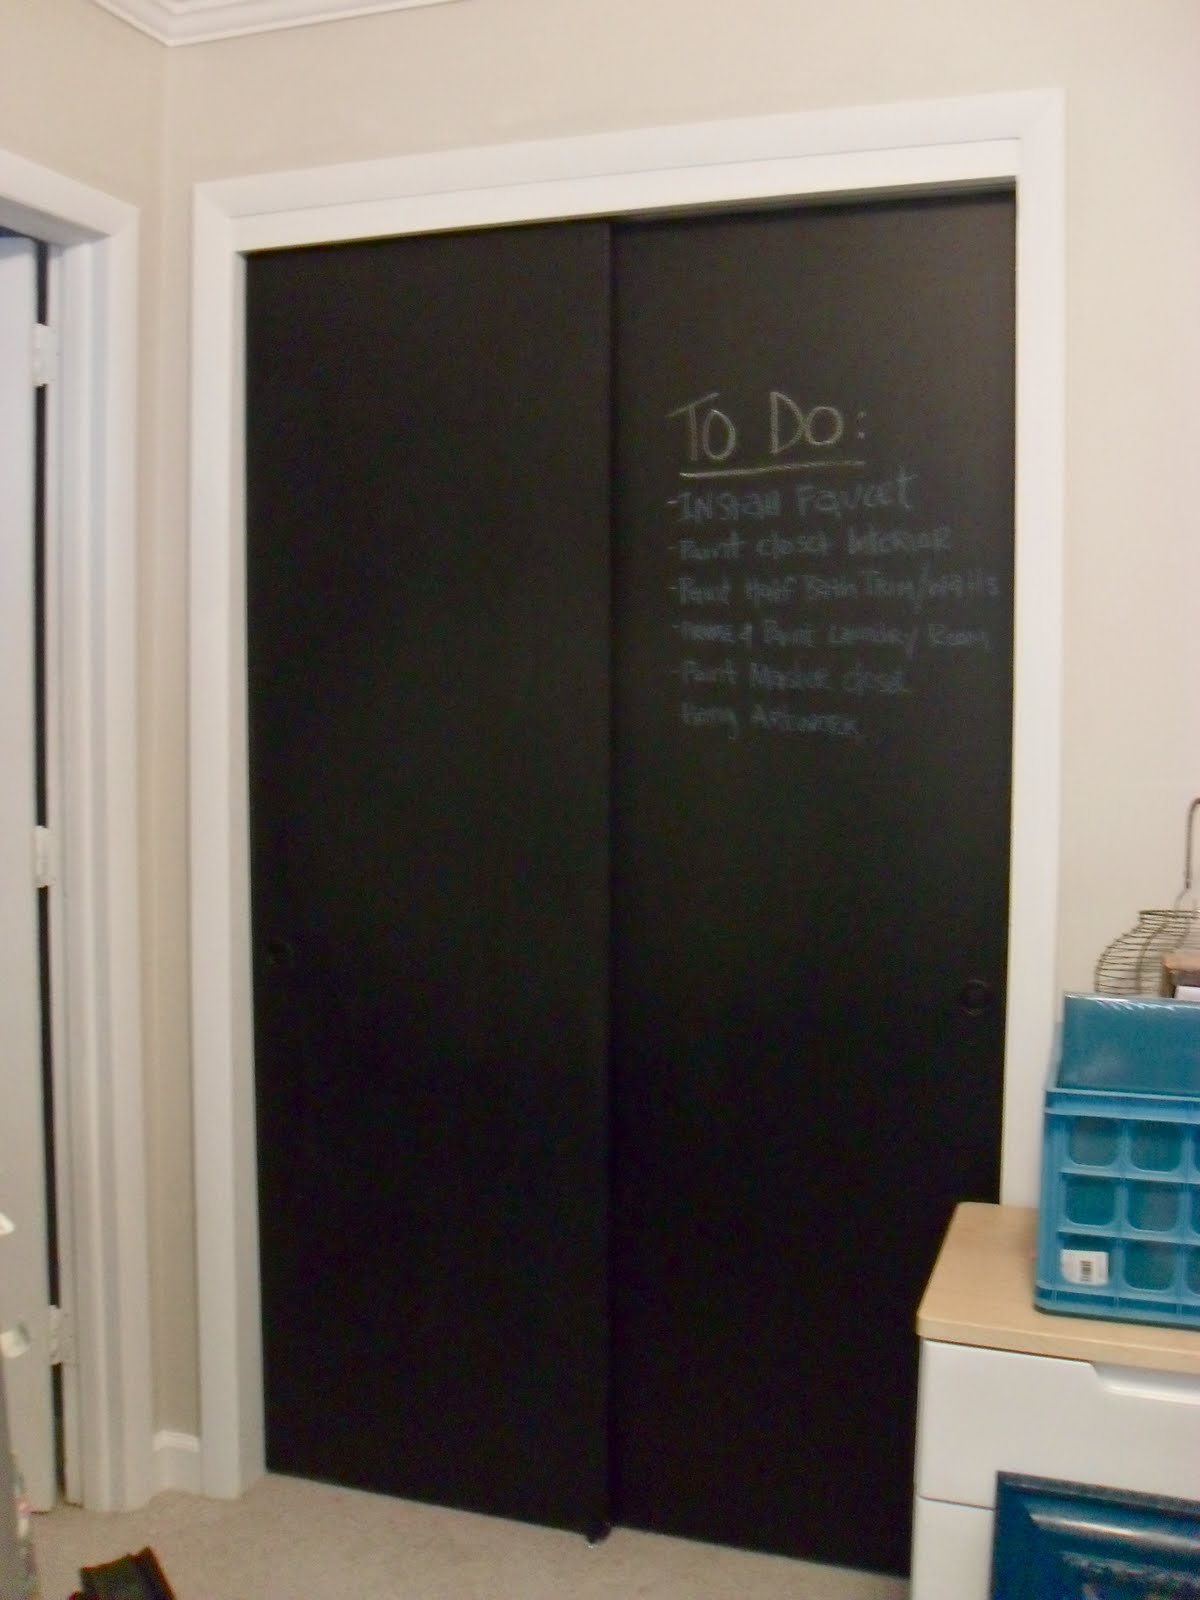 The Remodeled Life: Chalkboard - 114.8KB